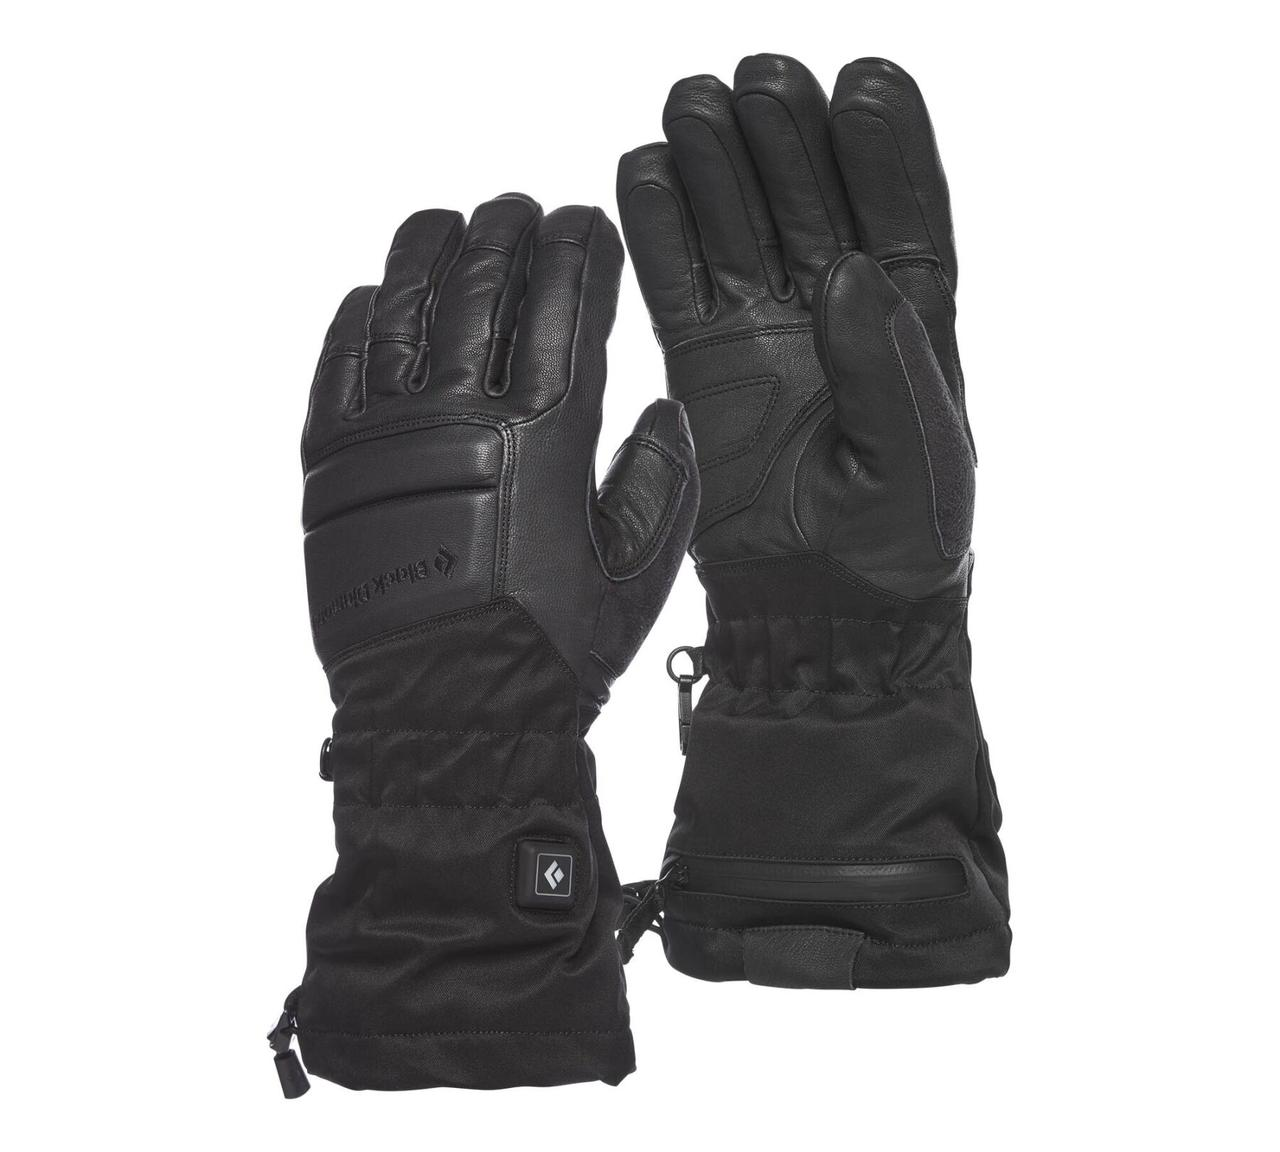 Рукавиці чоловічі Black Diamond Solano Gloves L Black